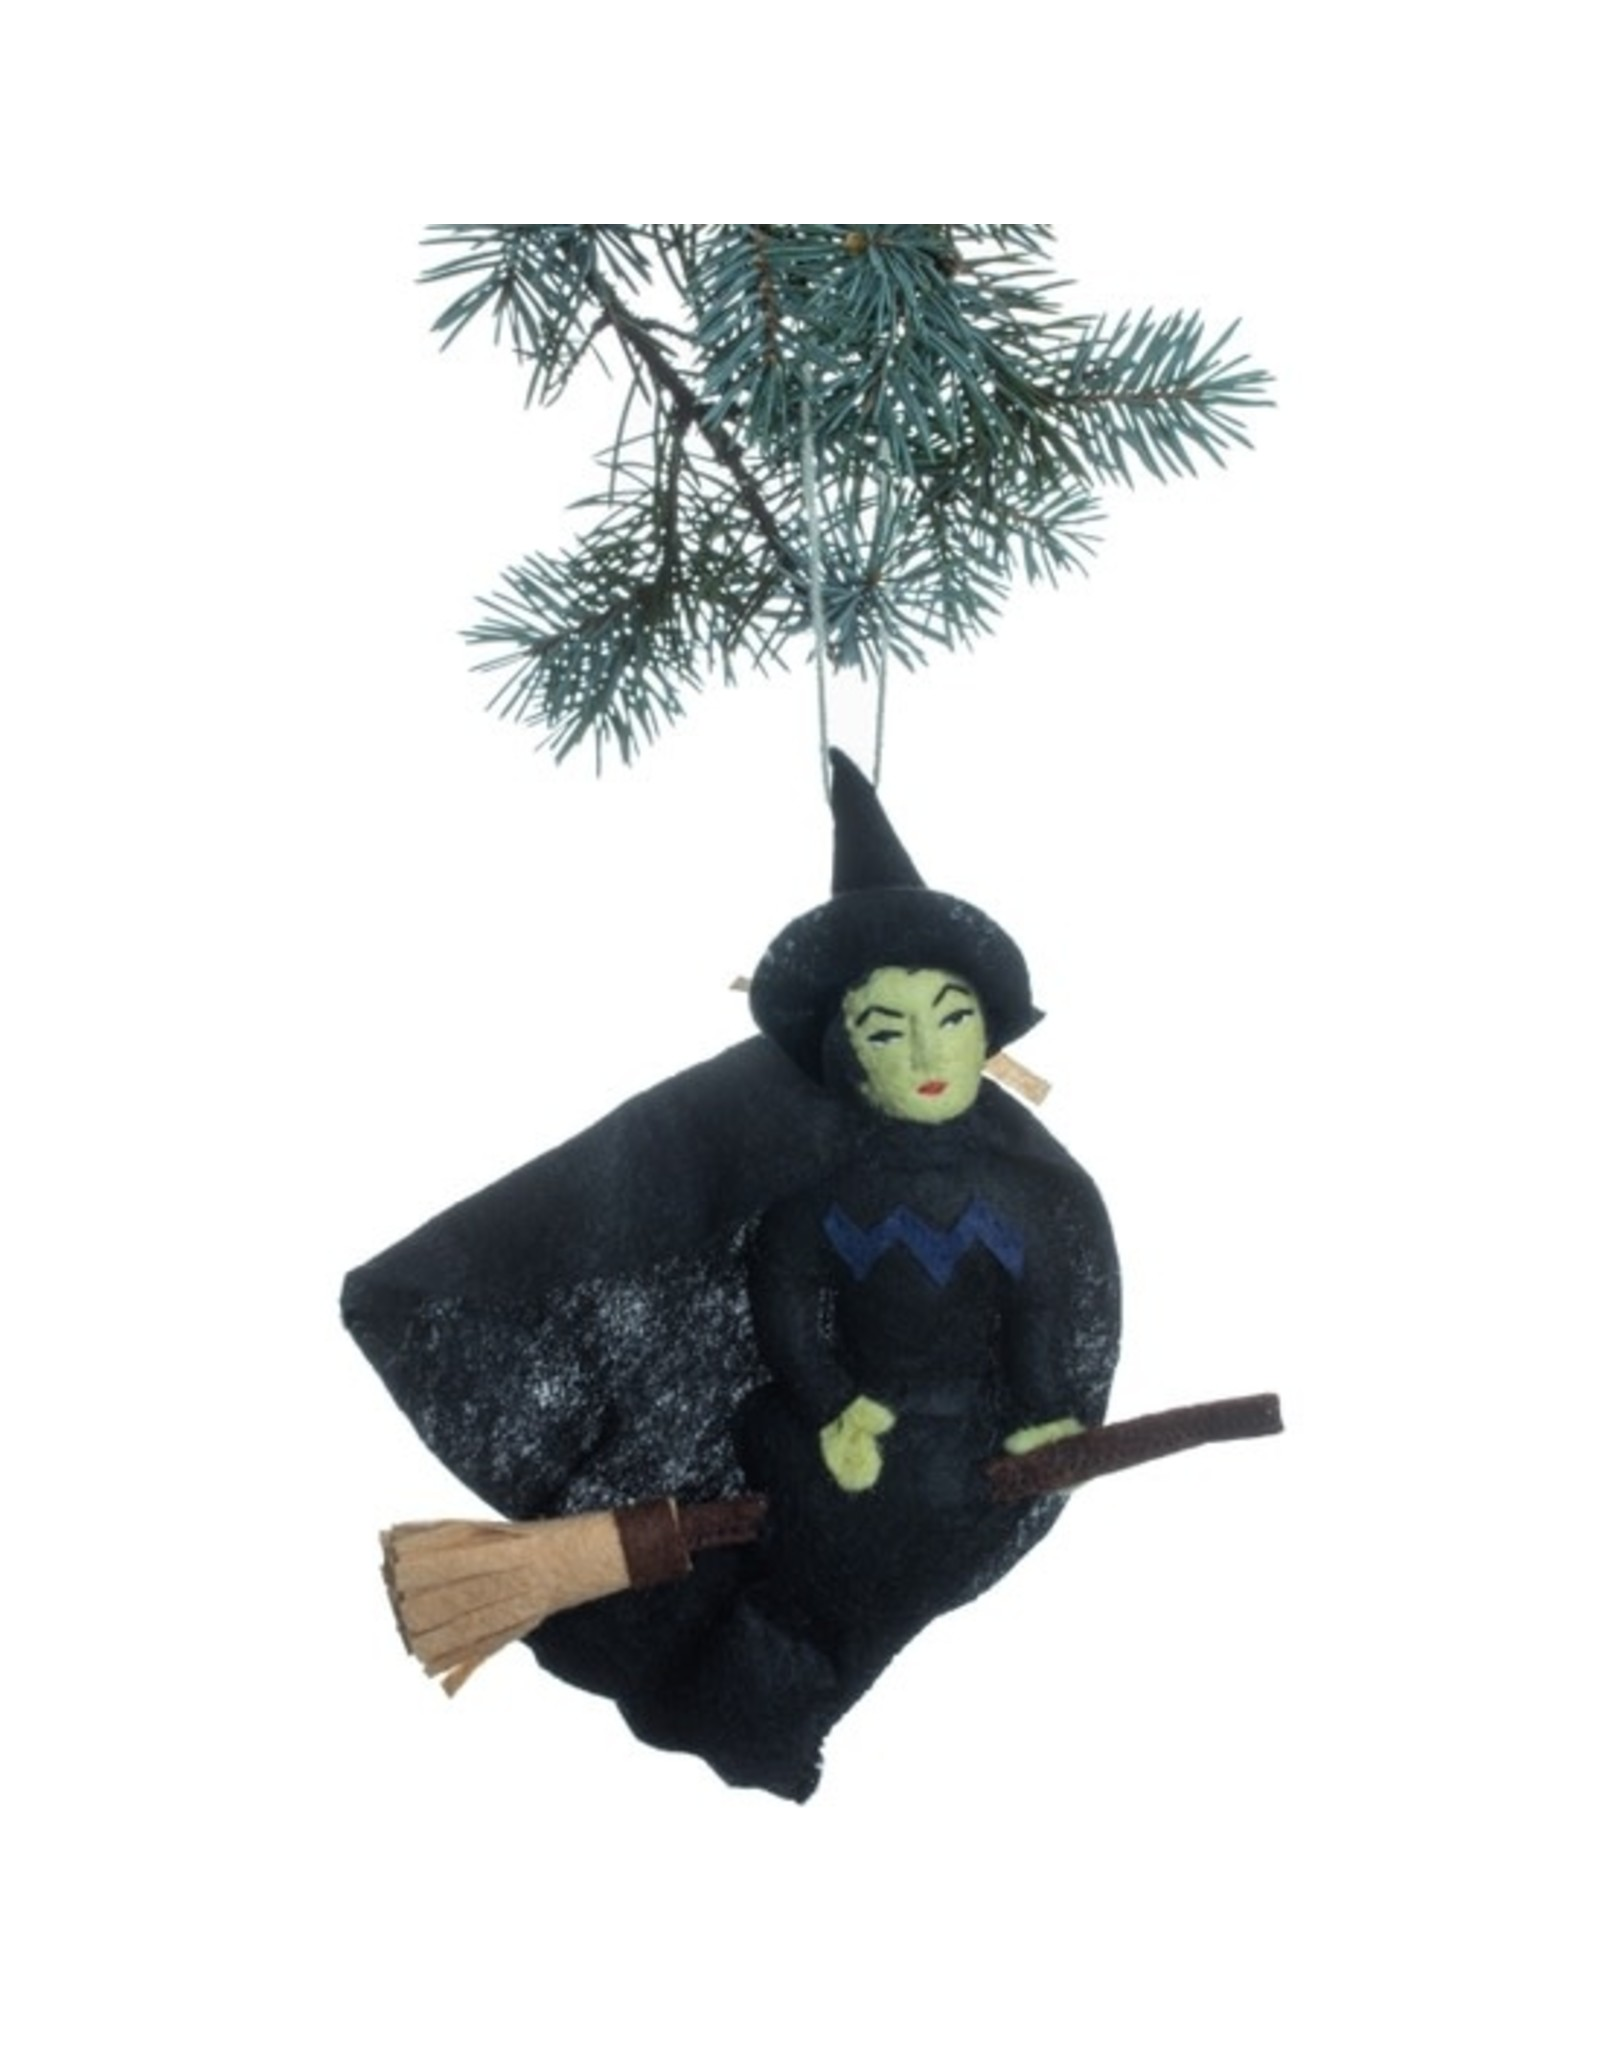 Wicked Witch of the West Ornament